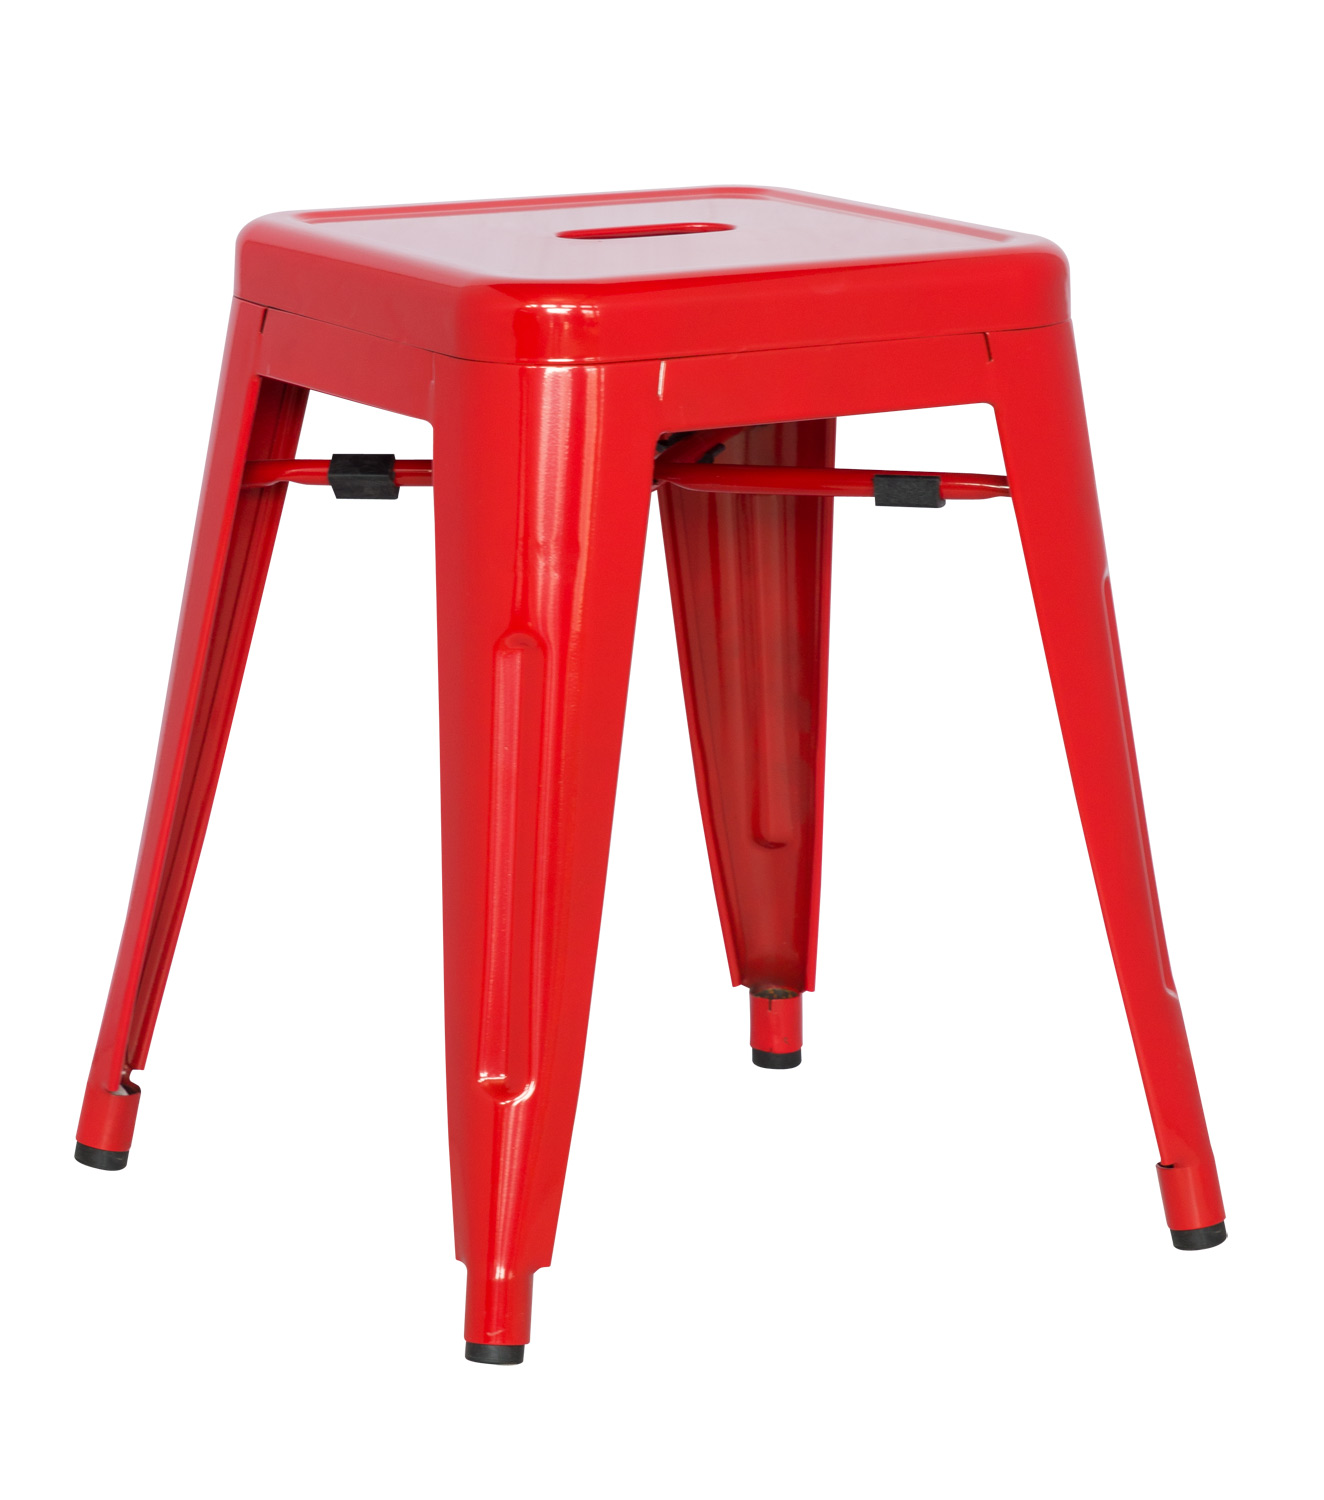 Galvanized Steel Chairs Chintaly Imports 8018 Galvanized Steel Side Chair Red Ci